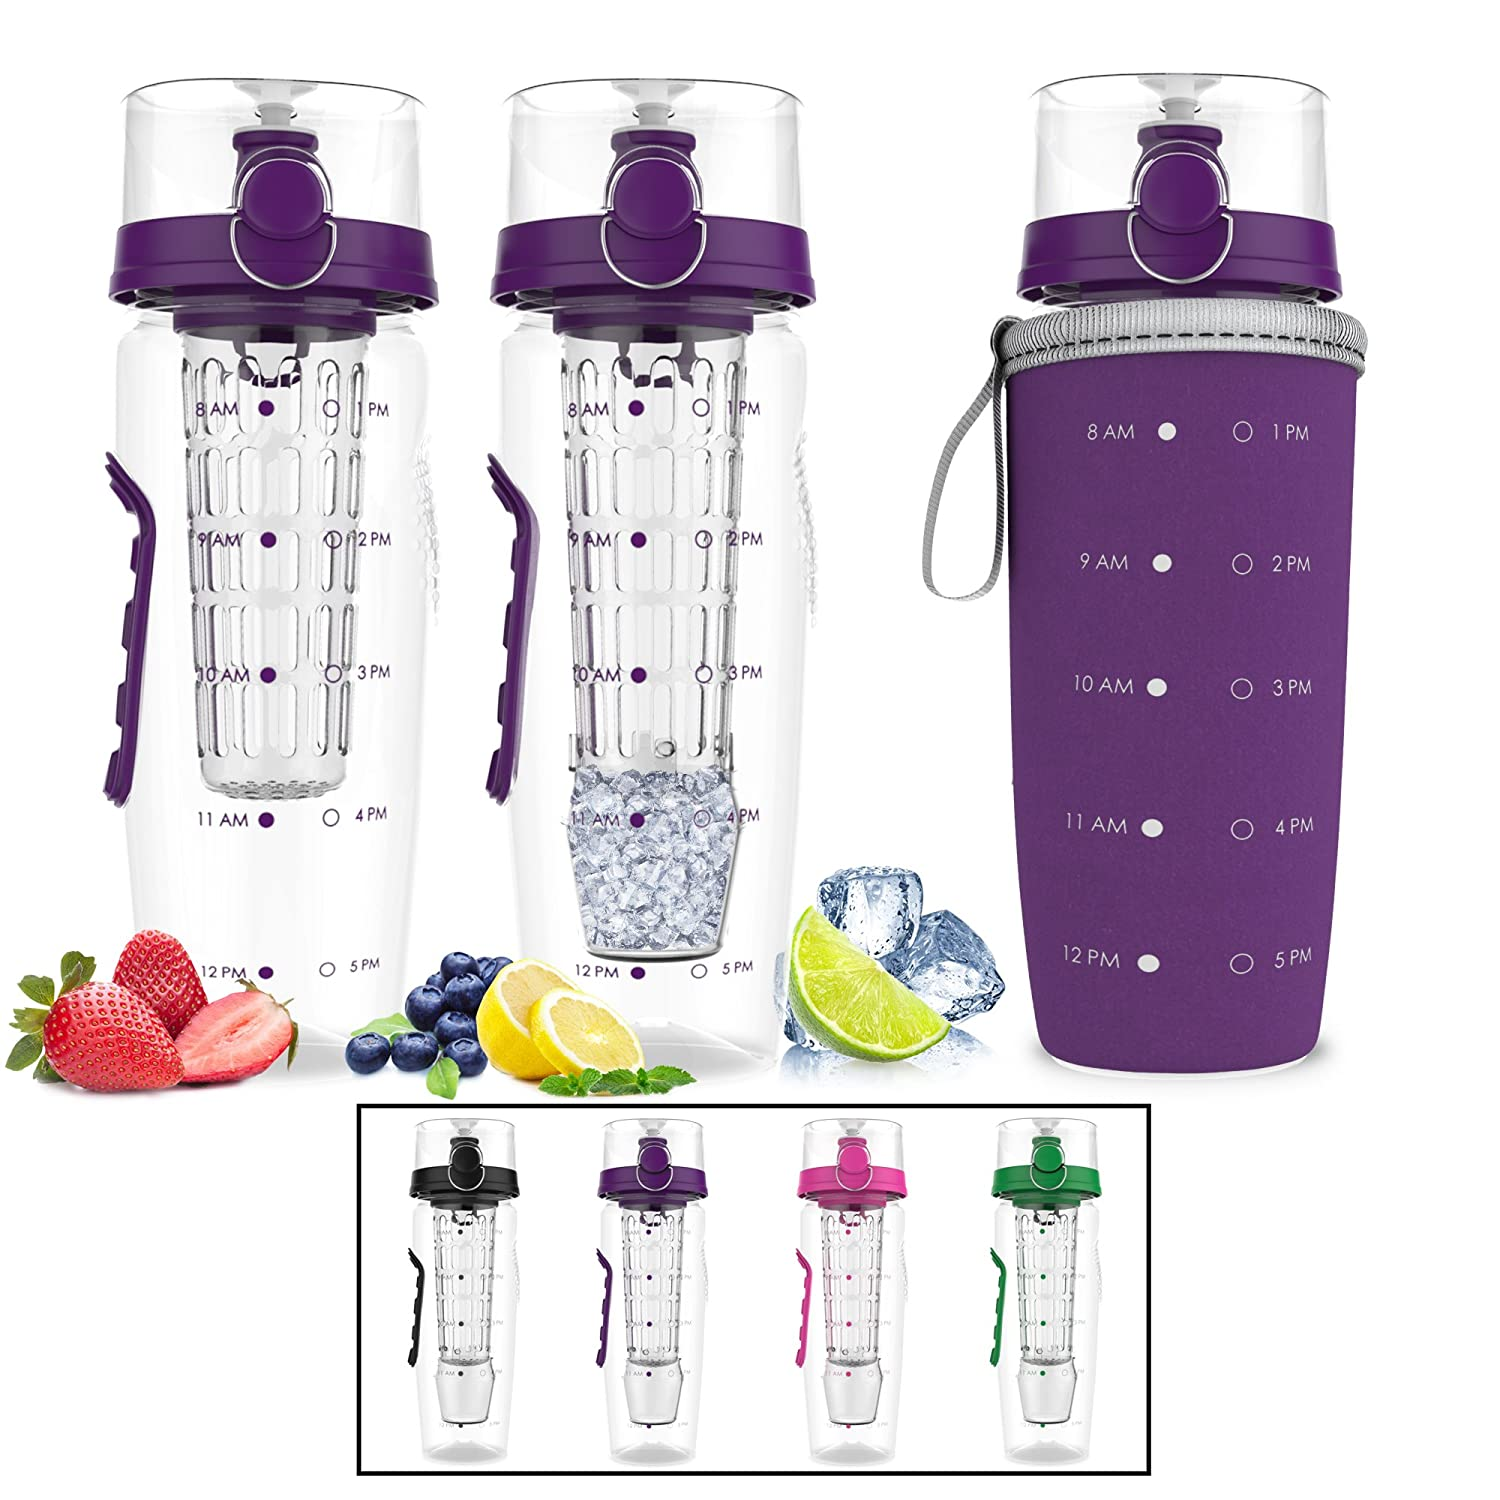 32 ounce water tracker bottle.